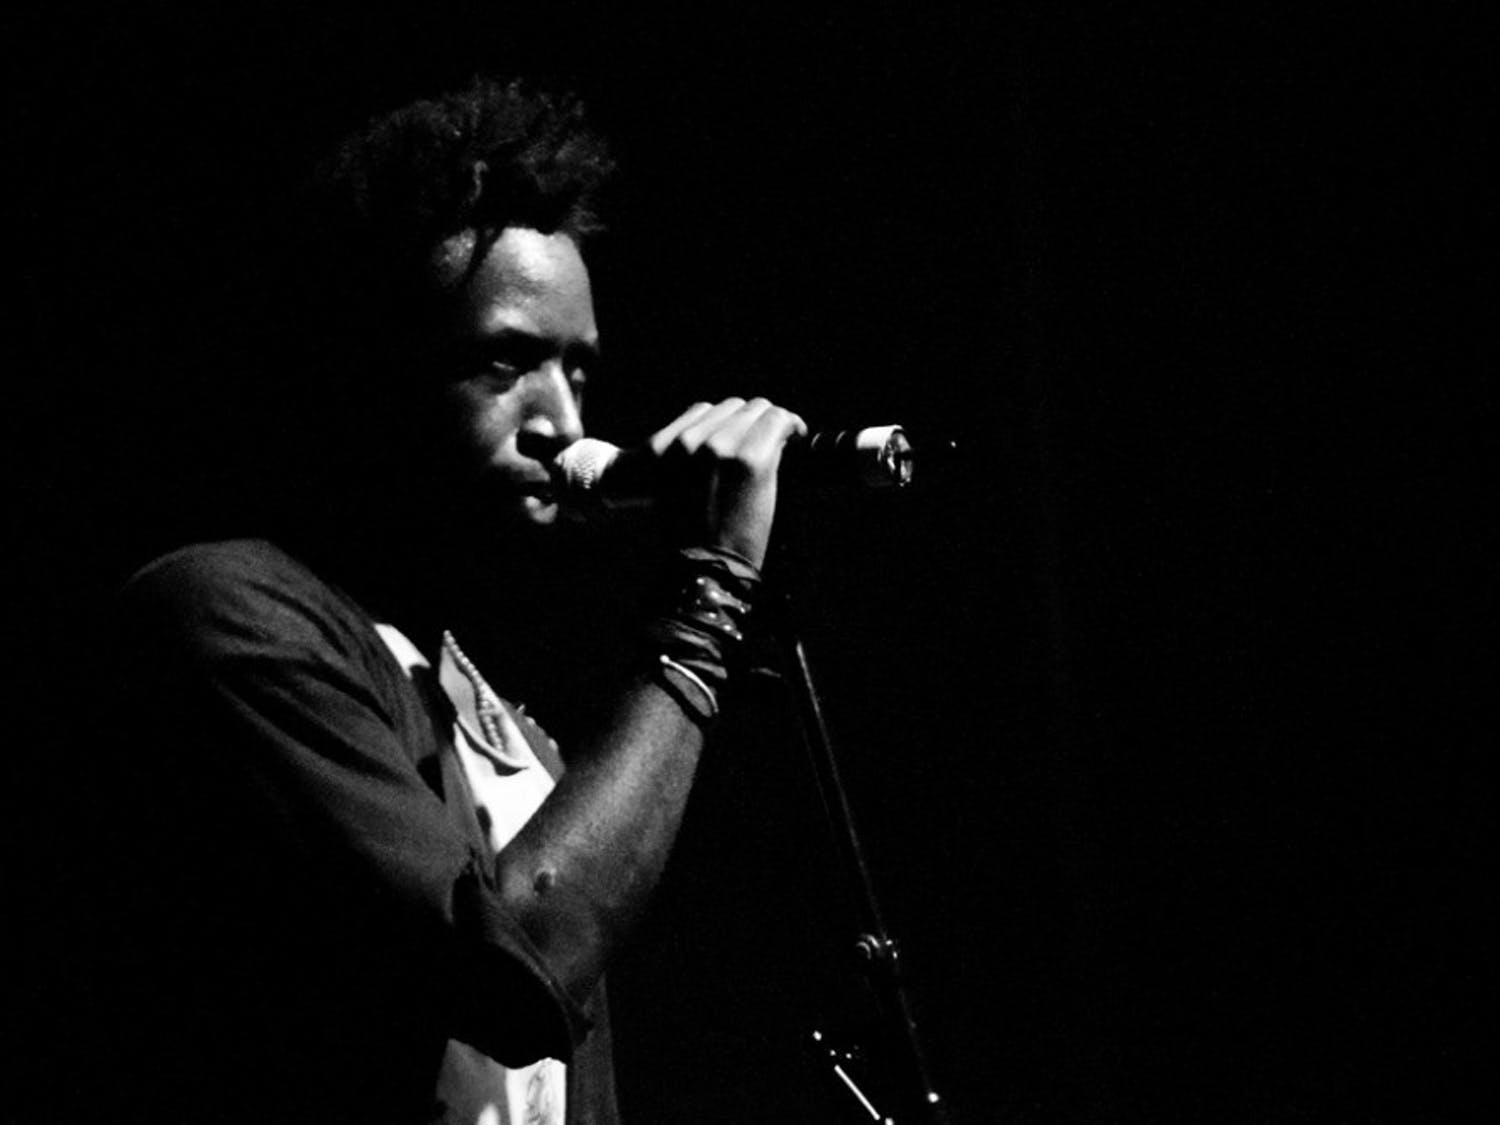 Saul Williams, a prominent hip-hop poet, will visit classes and perform alongside the Mivos Quartet.